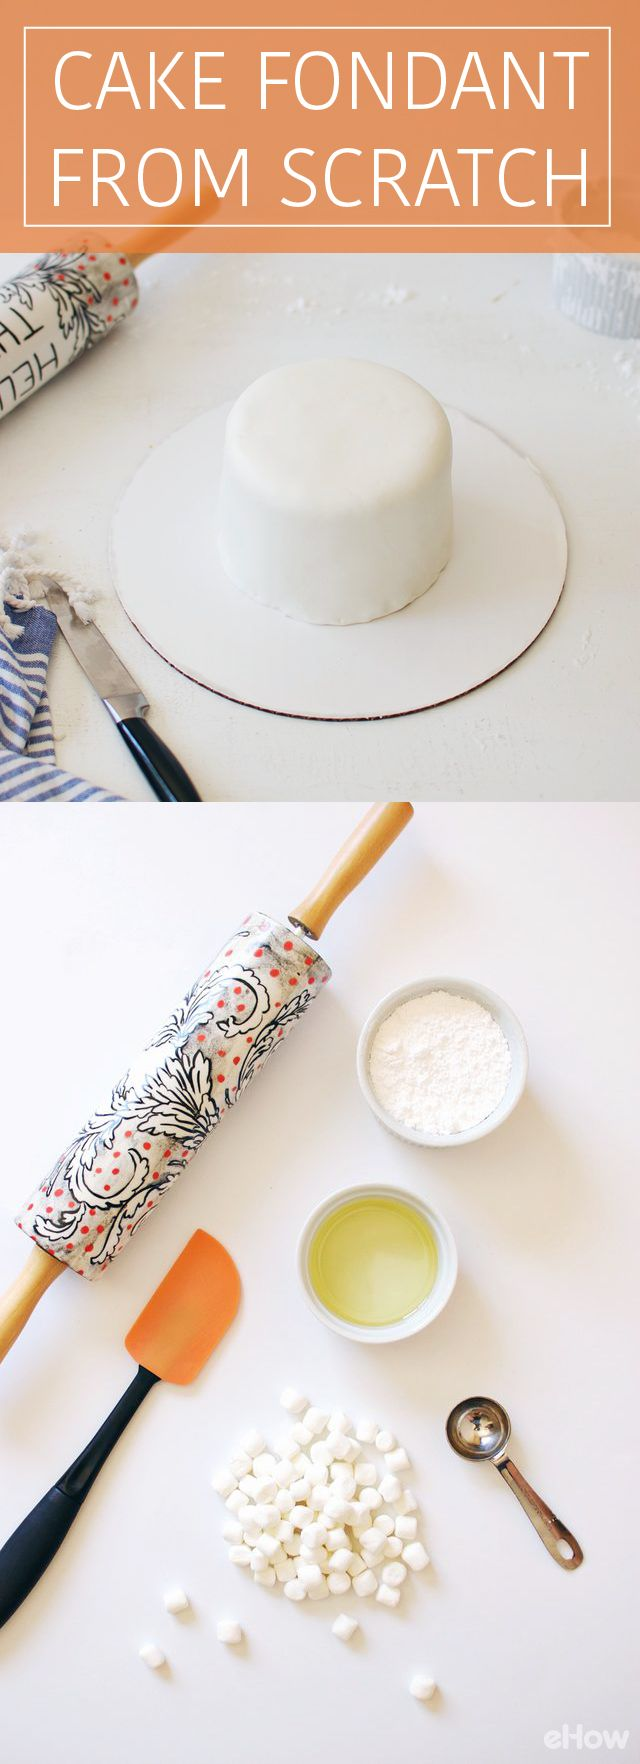 How to make cake fondant from scratch marshmallow for How to make a homemade cake from scratch